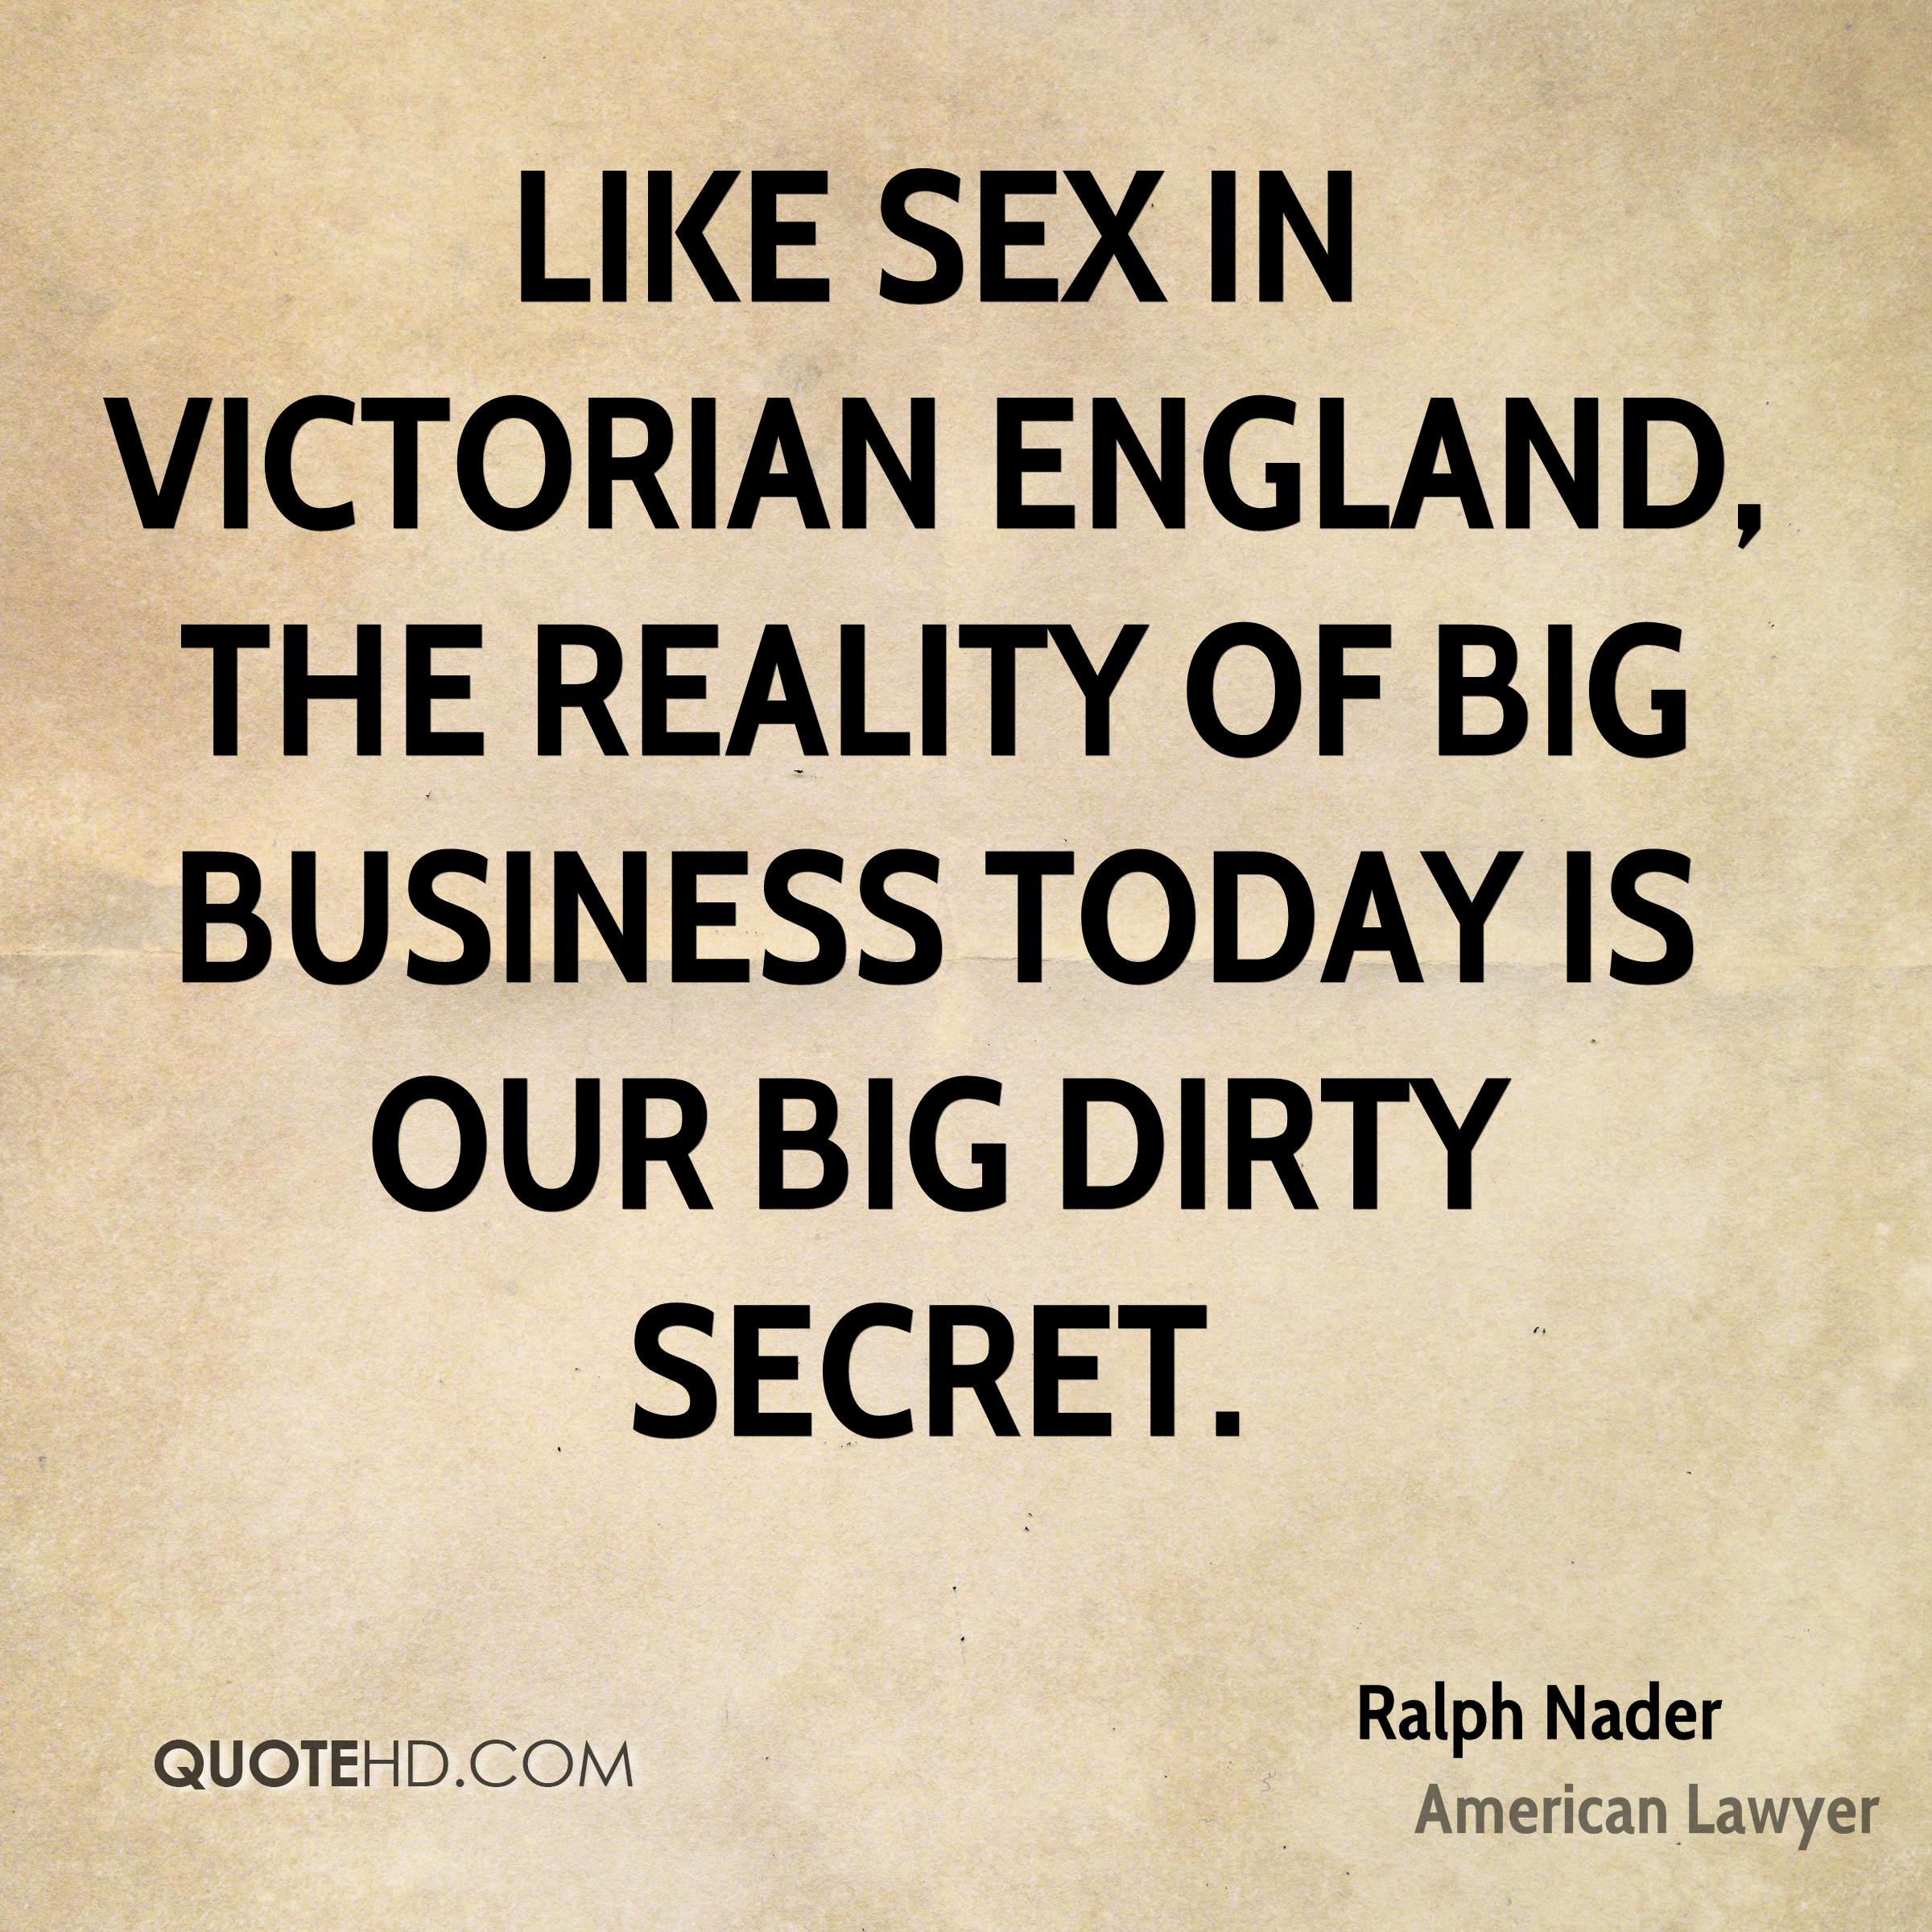 Like sex in Victorian England, the reality of Big Business today is our big dirty secret.